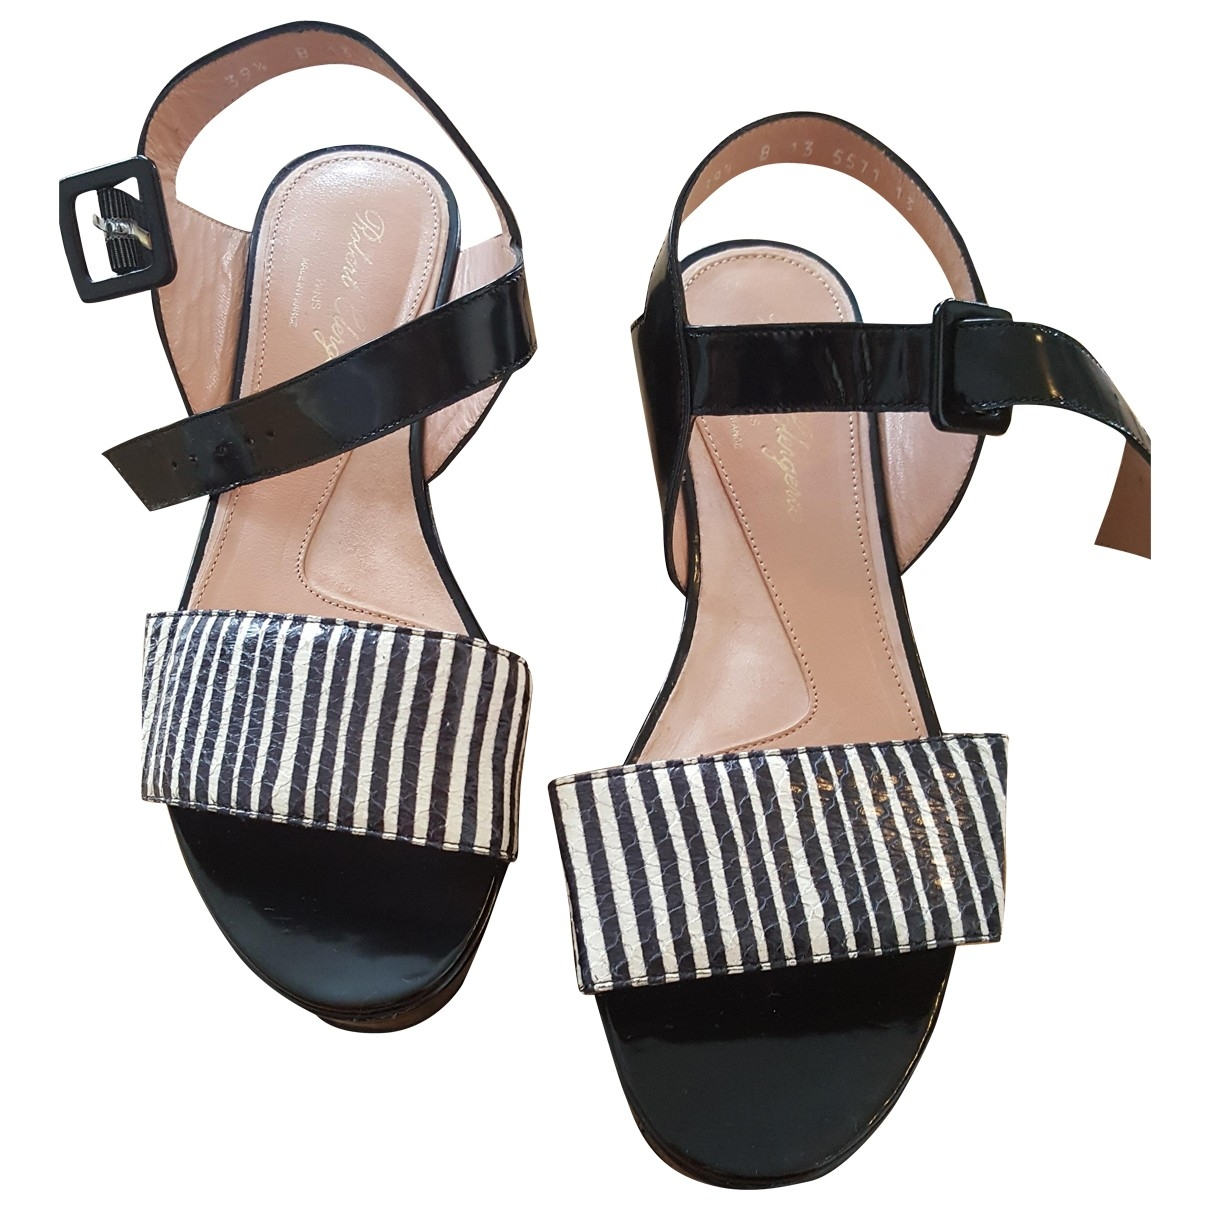 Robert Clergerie \N Patent leather Sandals for Women 39.5 EU